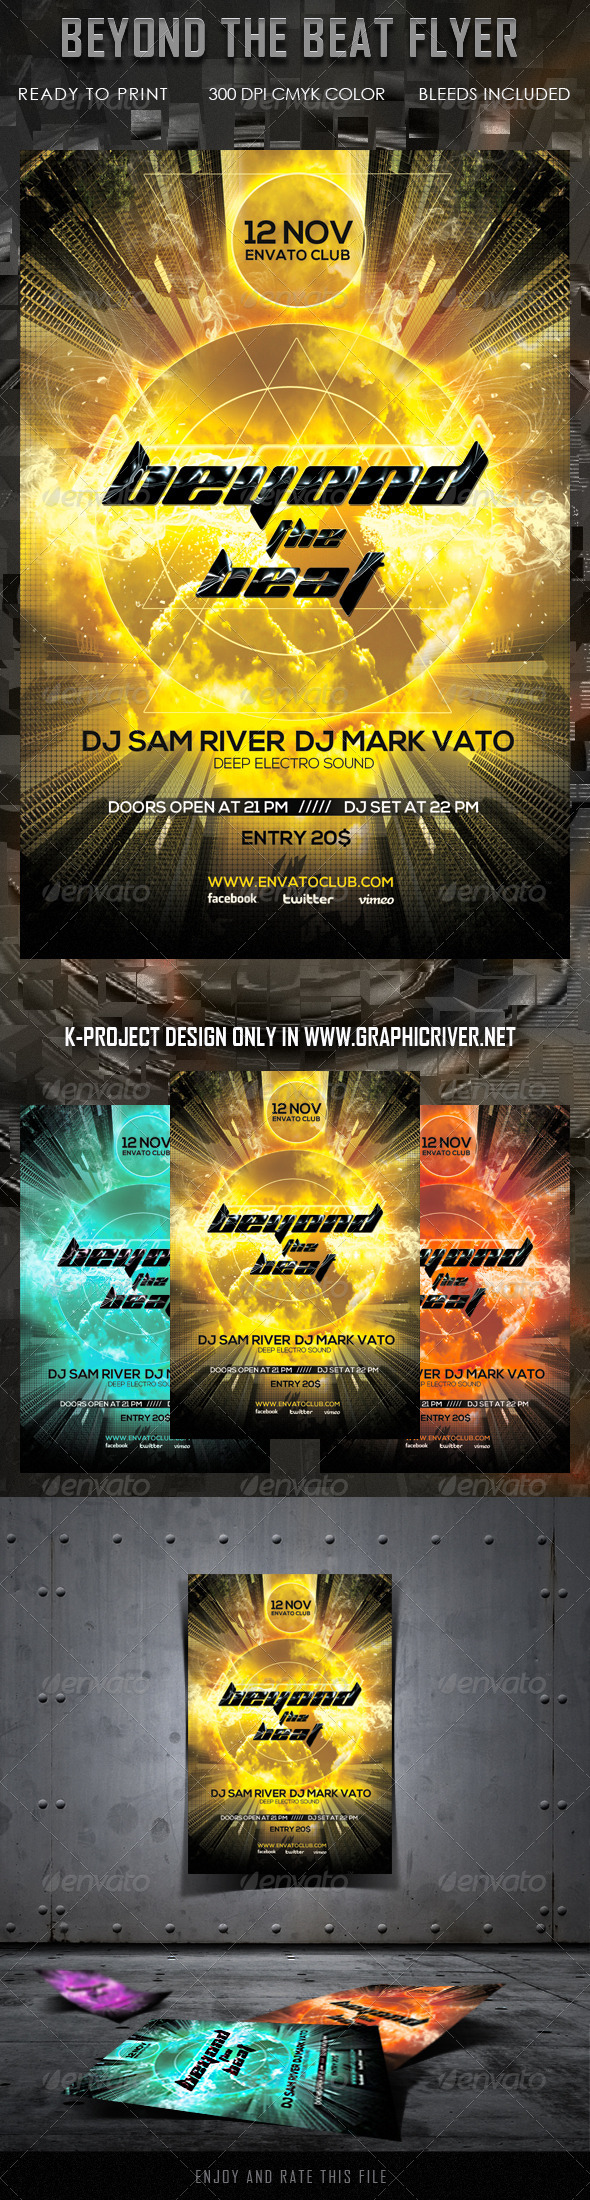 GraphicRiver Beyond The Beat Flyer 5843367